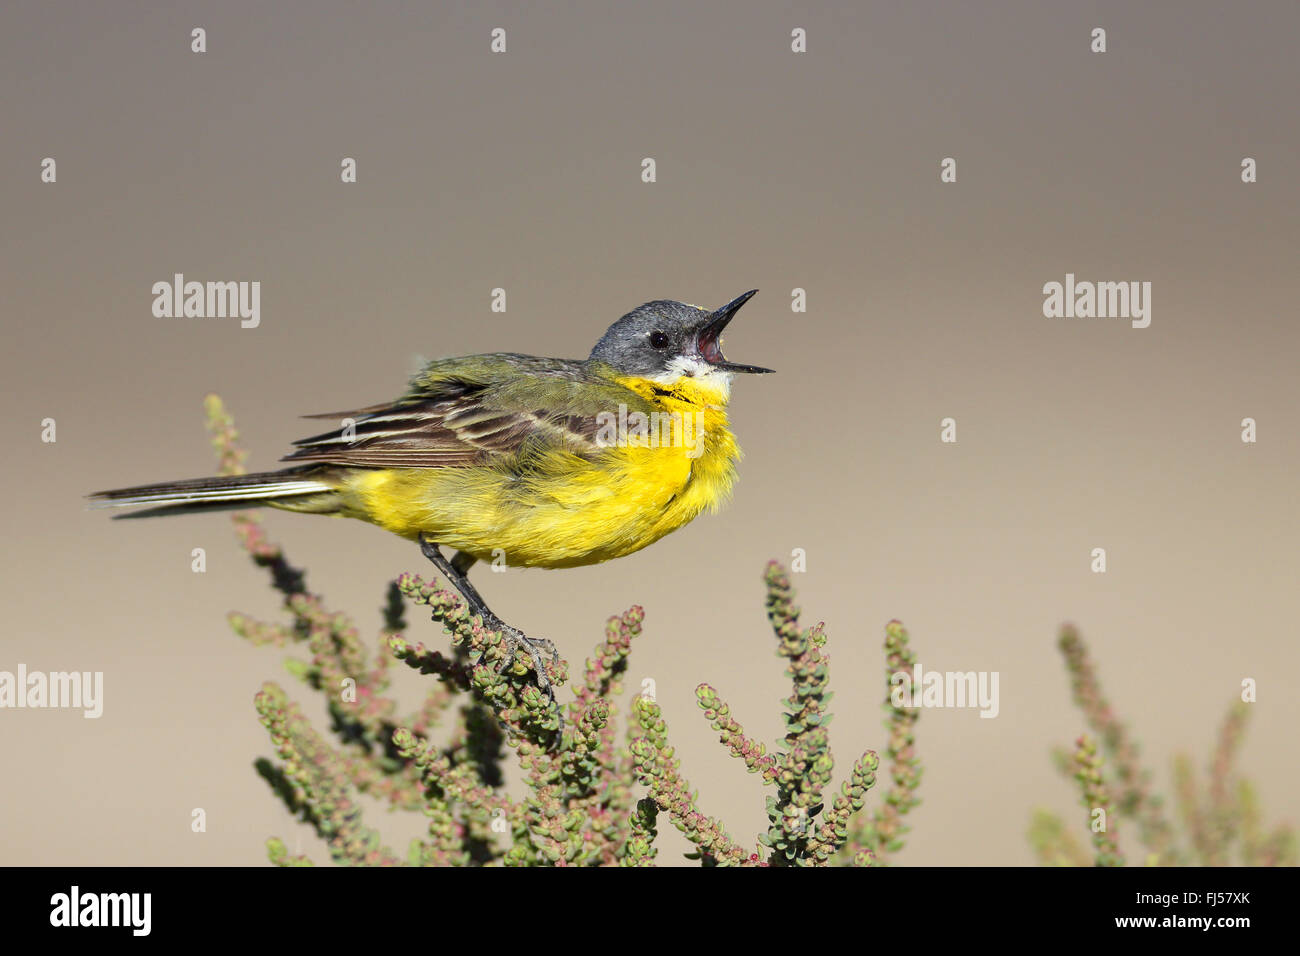 Ashy-headed Wagtail, Yellow wagtail (Motacilla flava cinereocapilla), calling male sitting on a succulent shrub, - Stock Image